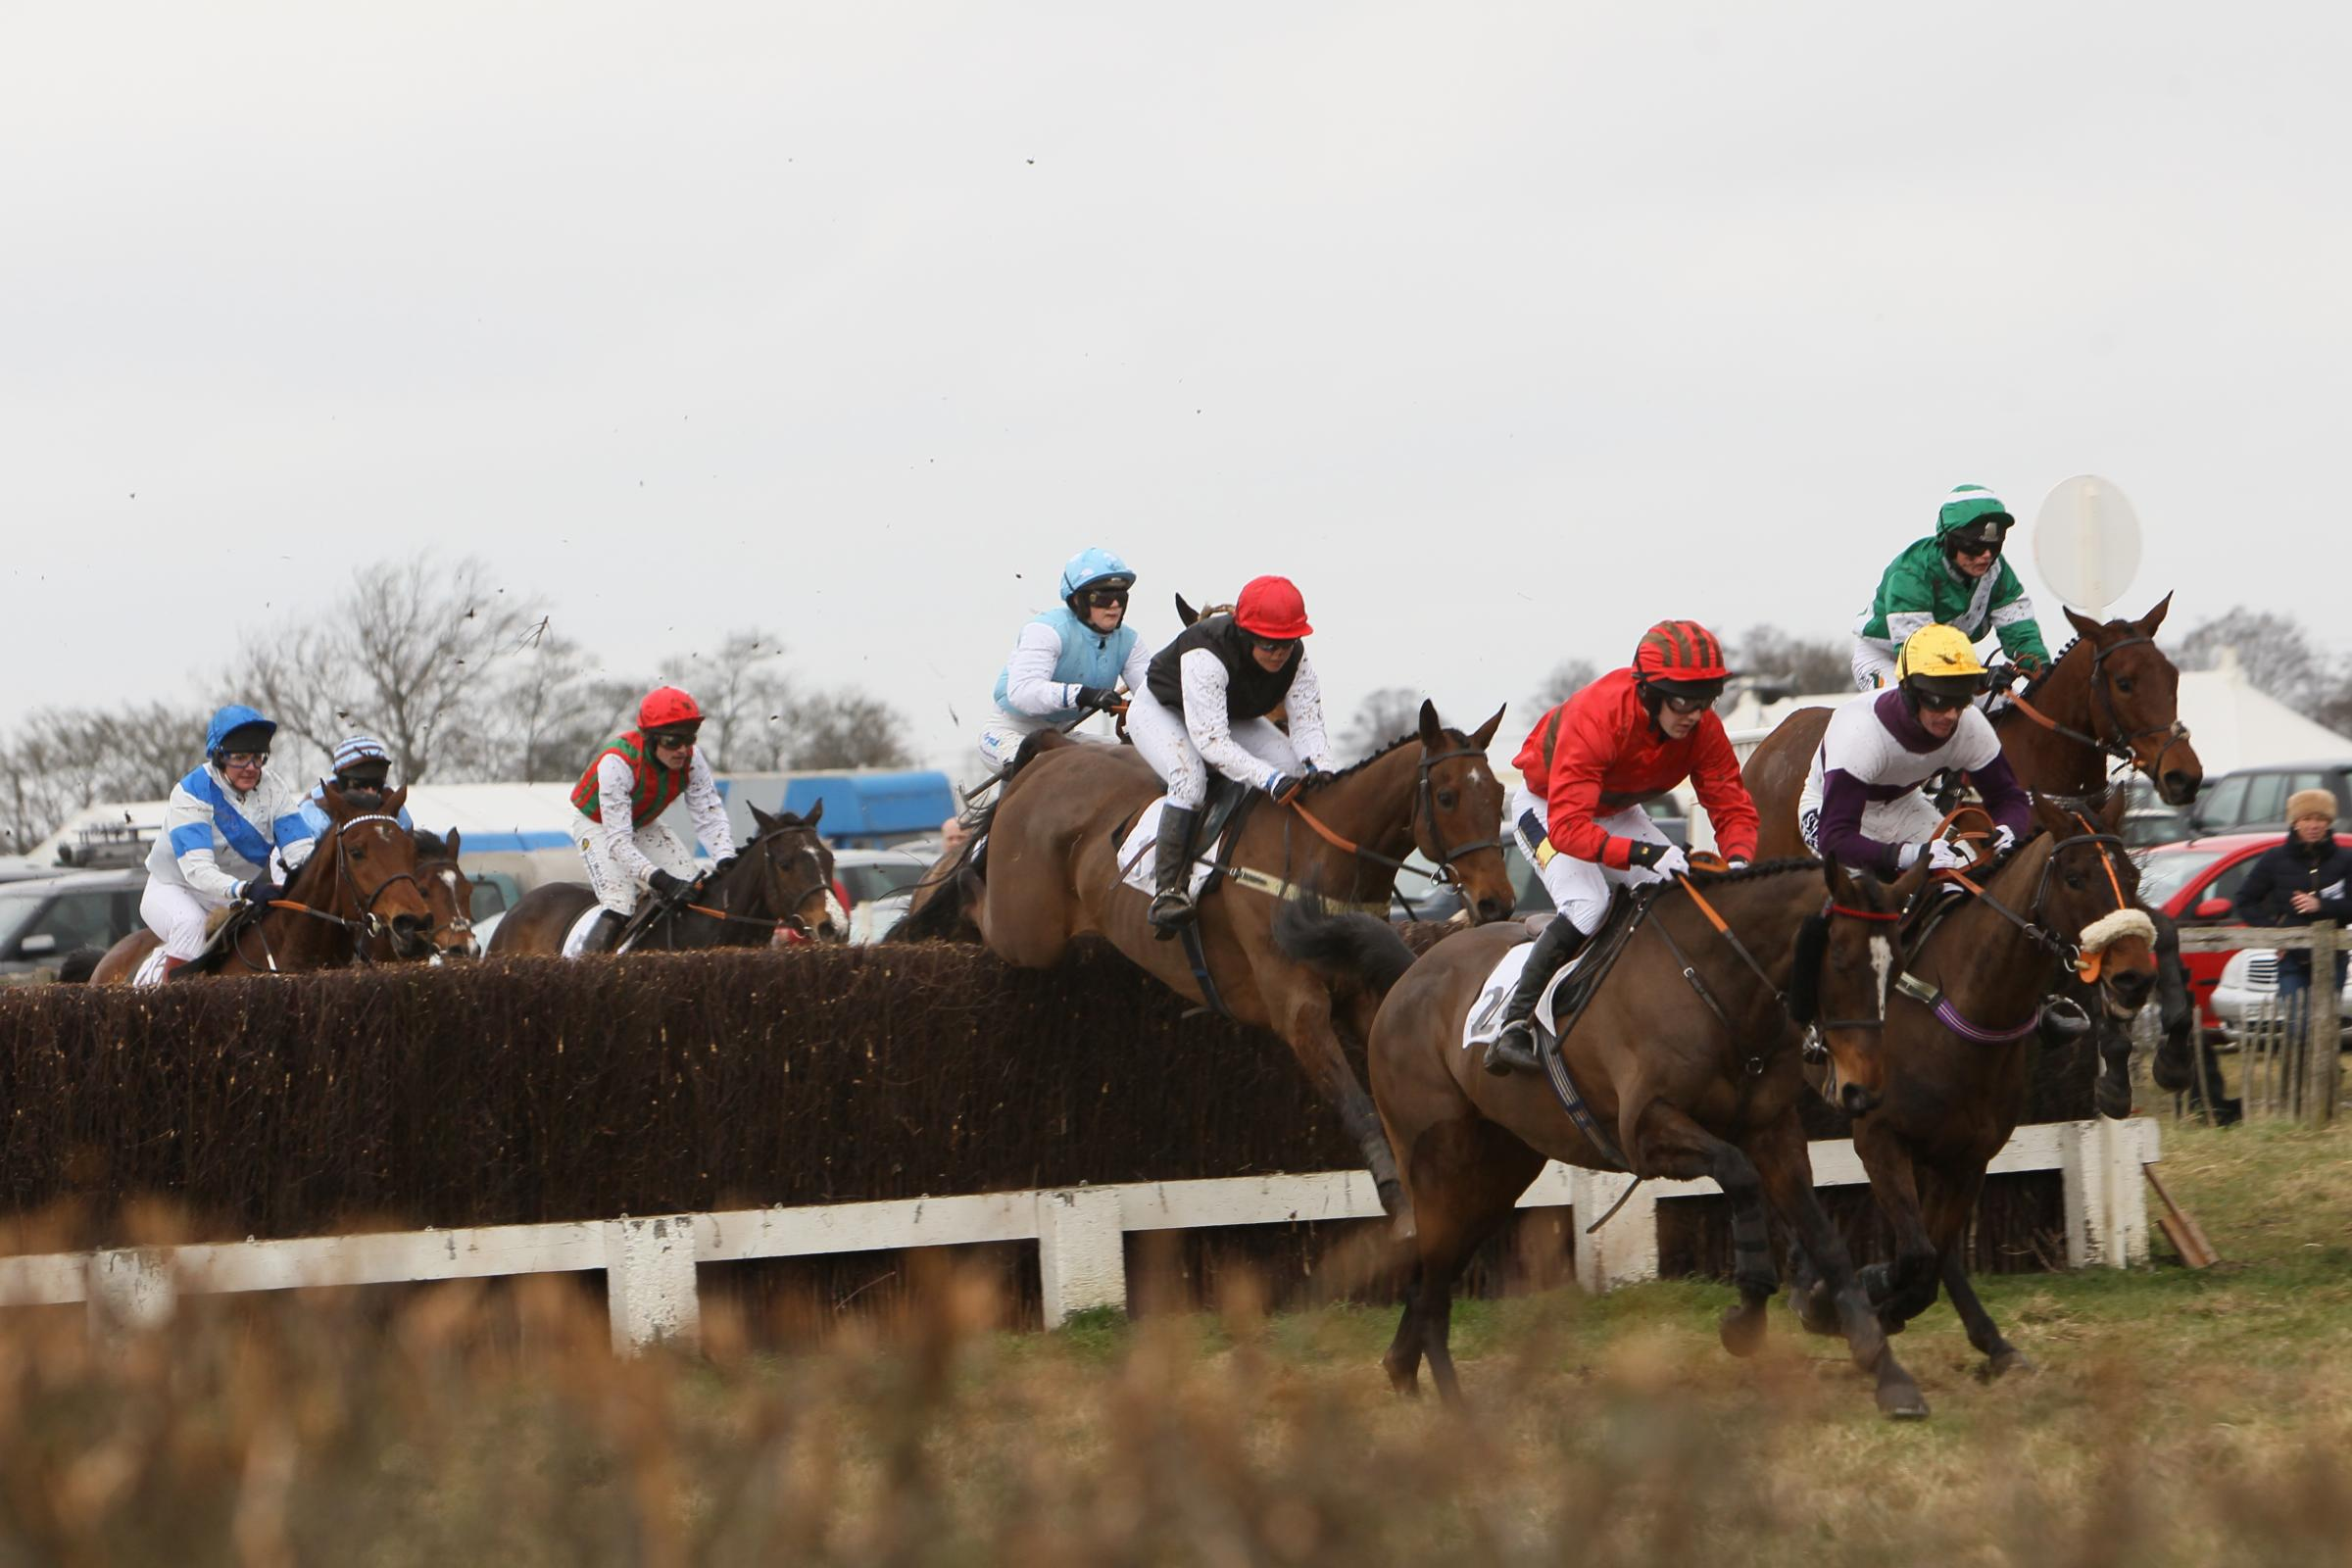 Point to point racing in Marks Tey in March last year